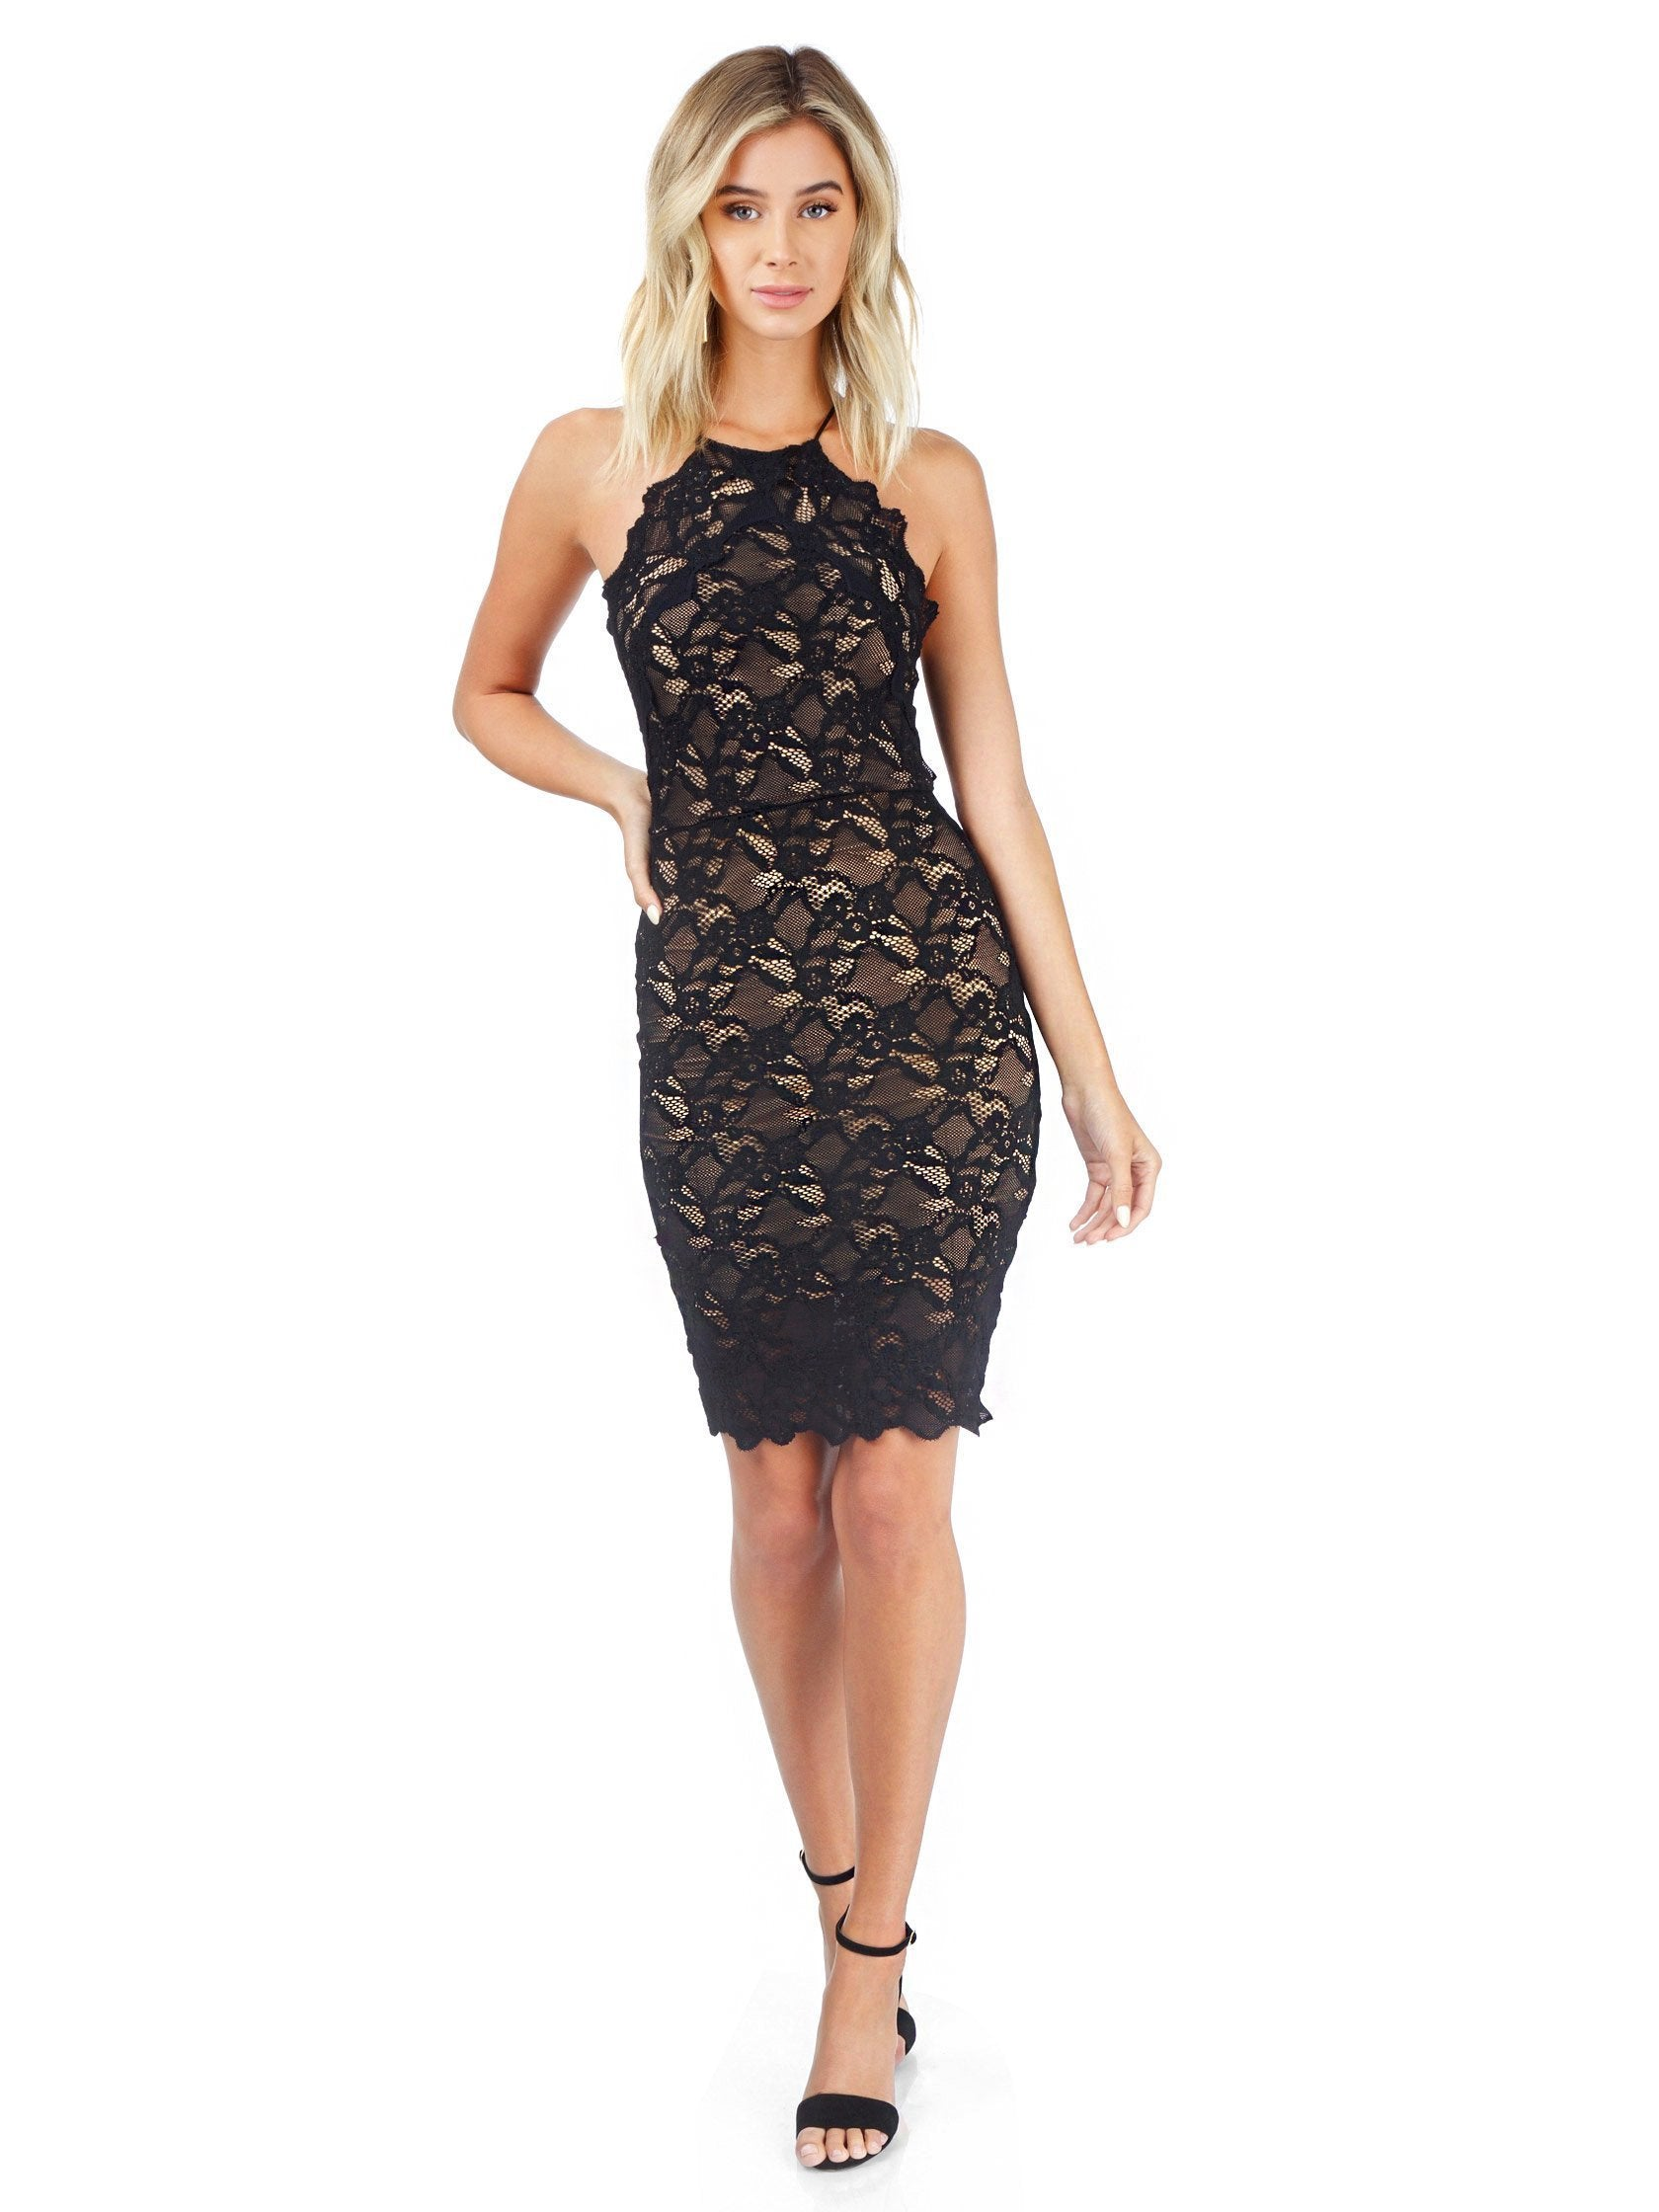 Woman wearing a dress rental from Nightcap Clothing called Black Drive Me Home Mini Dress